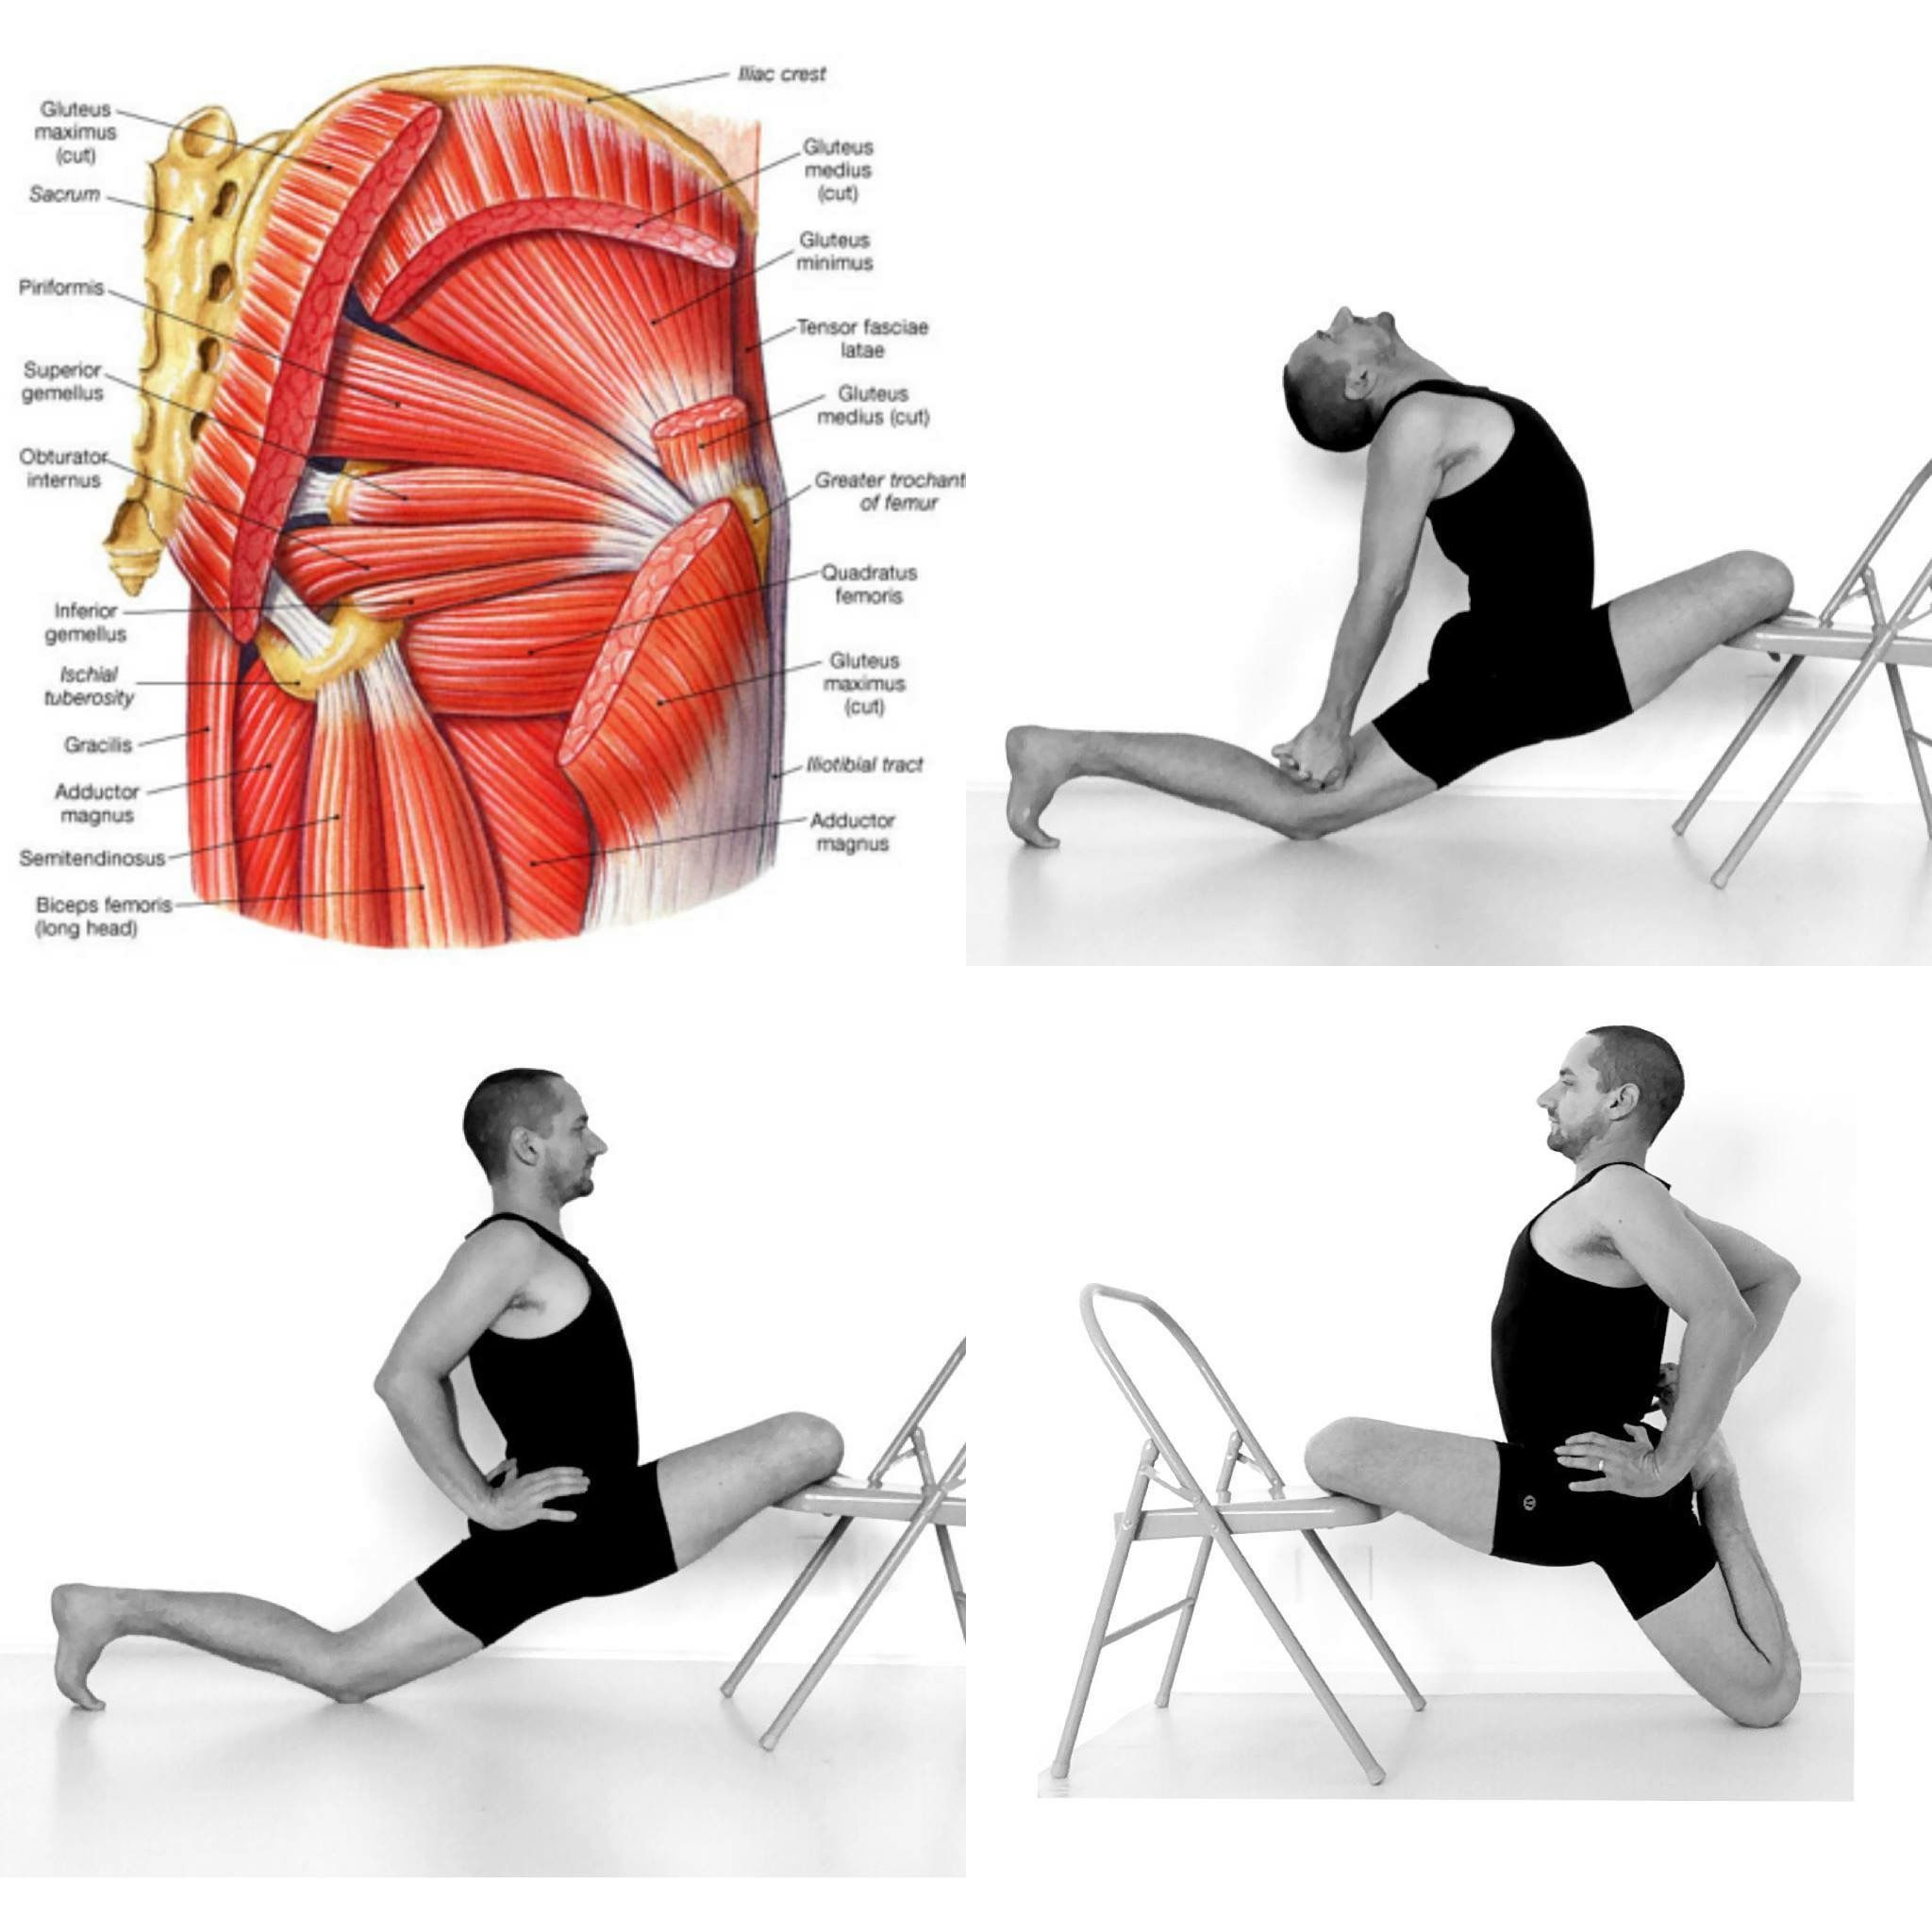 35 muscles are involved in this Yoga movement. The Posterior Chain ...